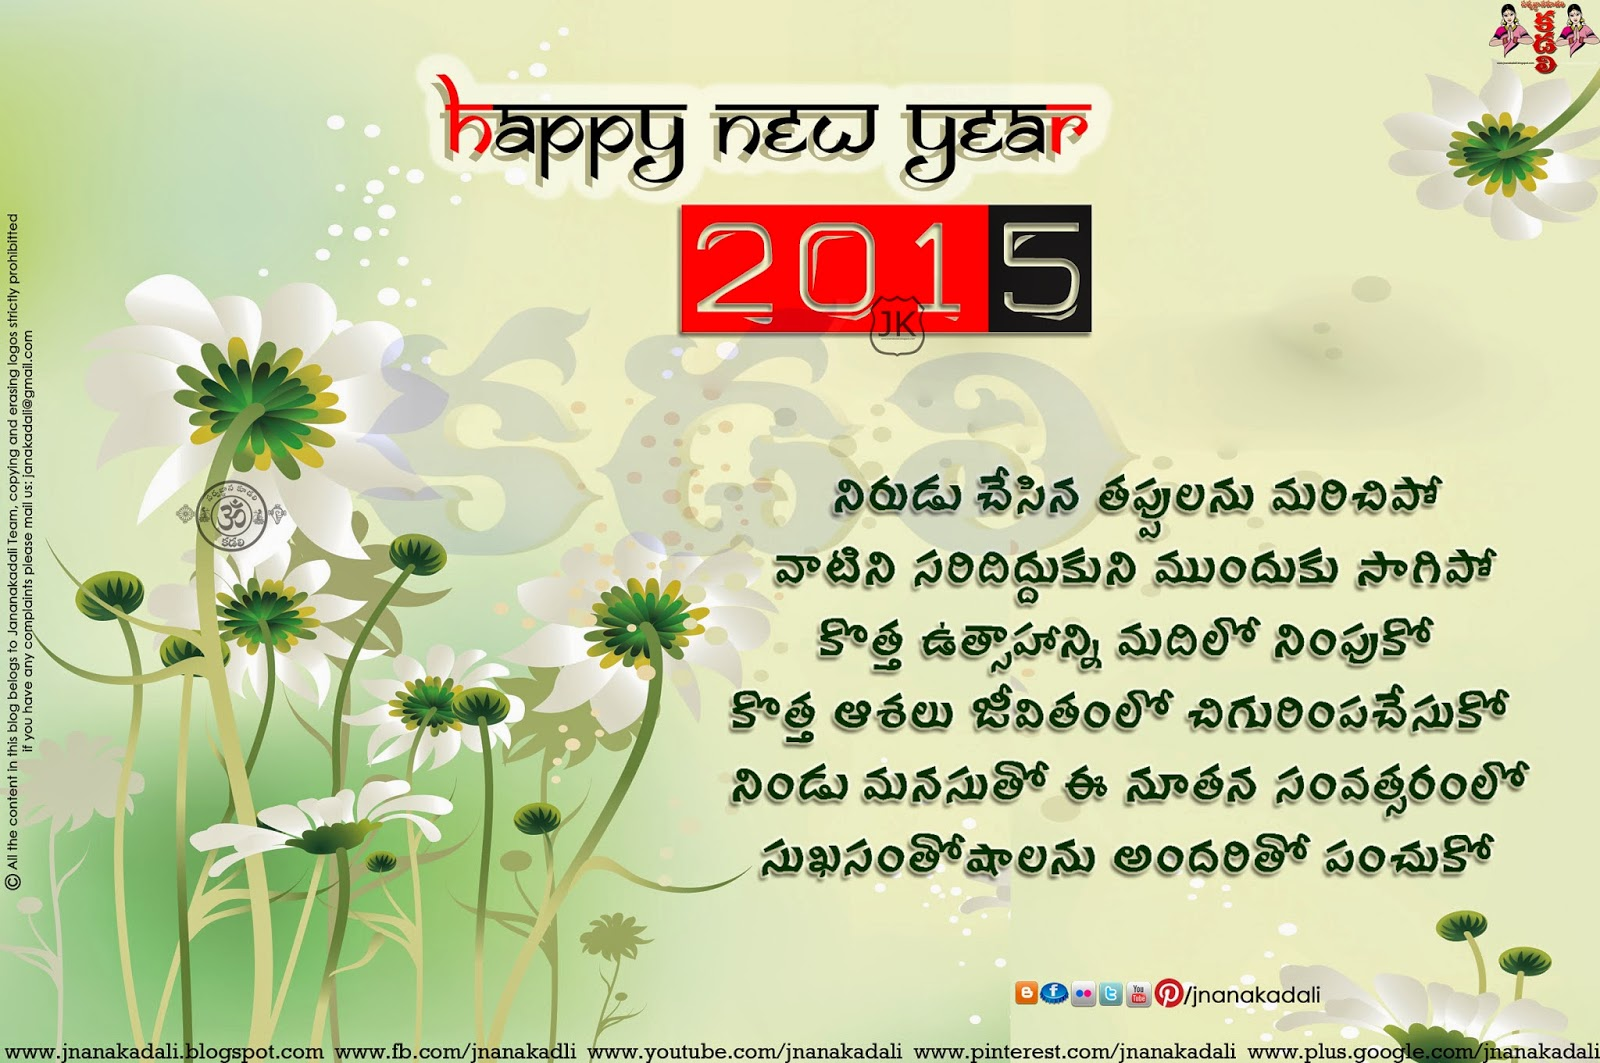 Happy New Year 2015 Pictures Images Of Newyear2015 Hd Wallpapers Of